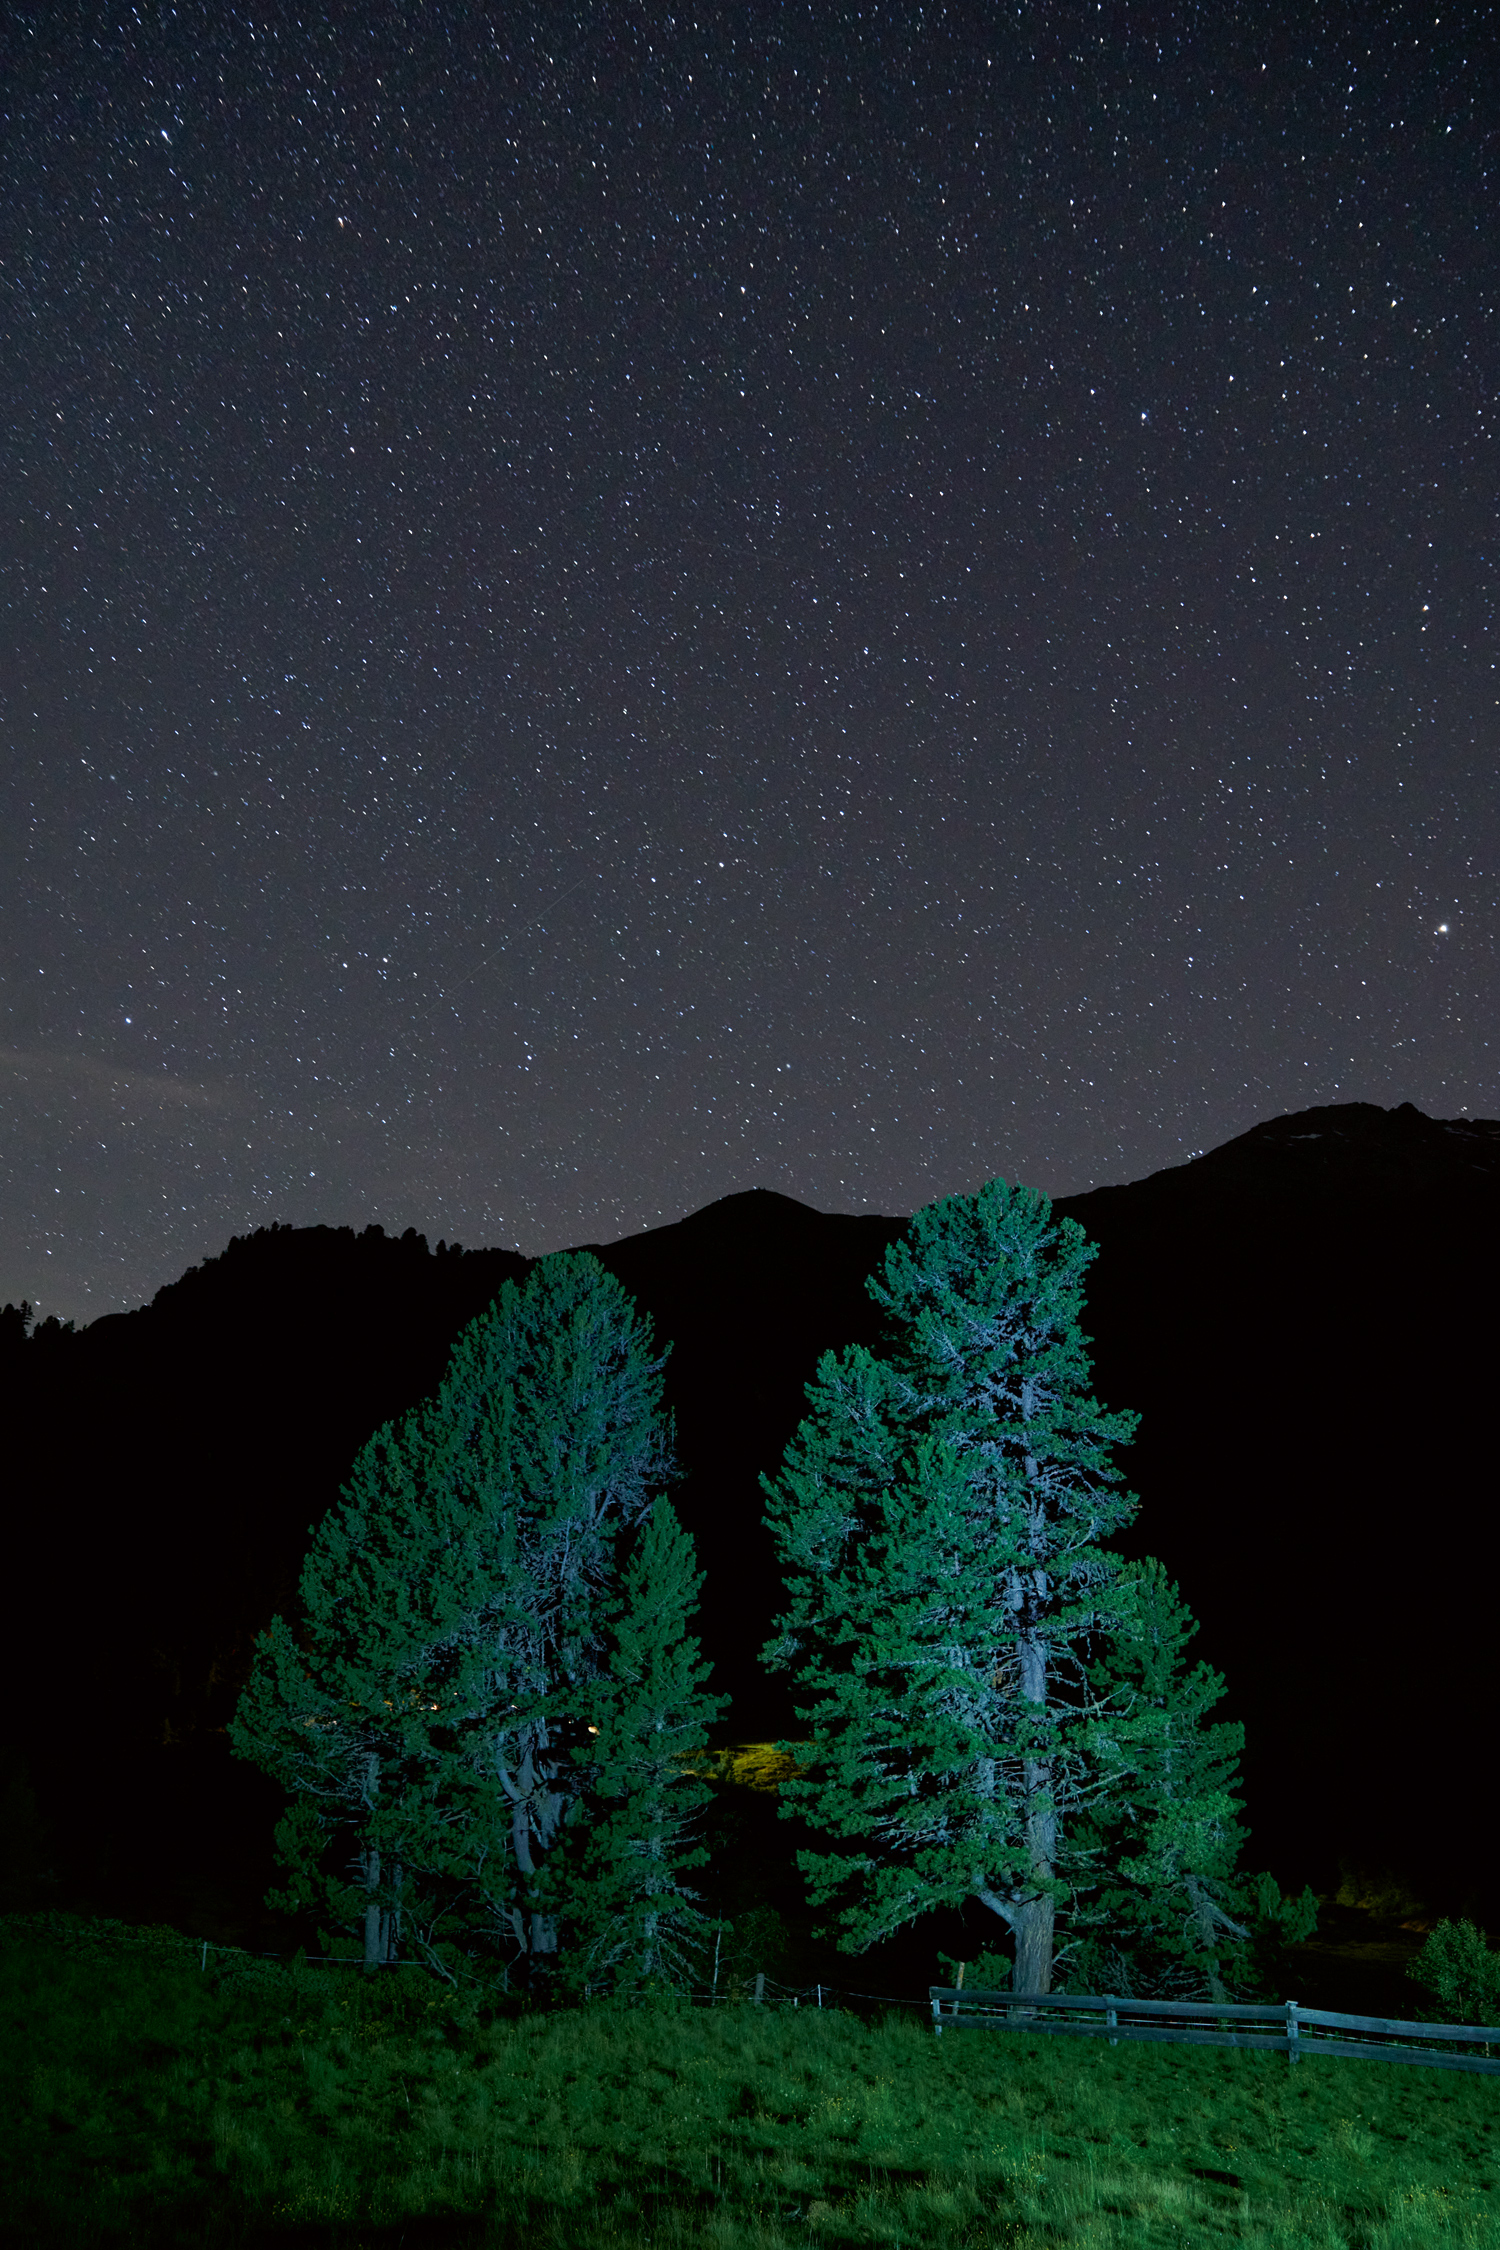 <p>Barely 100 stars are visible when gazing into the sky from the outskirts of a city. In the mountains, you cannot only see thousands of stars but also the Andomeda galaxy and space stations.</p>